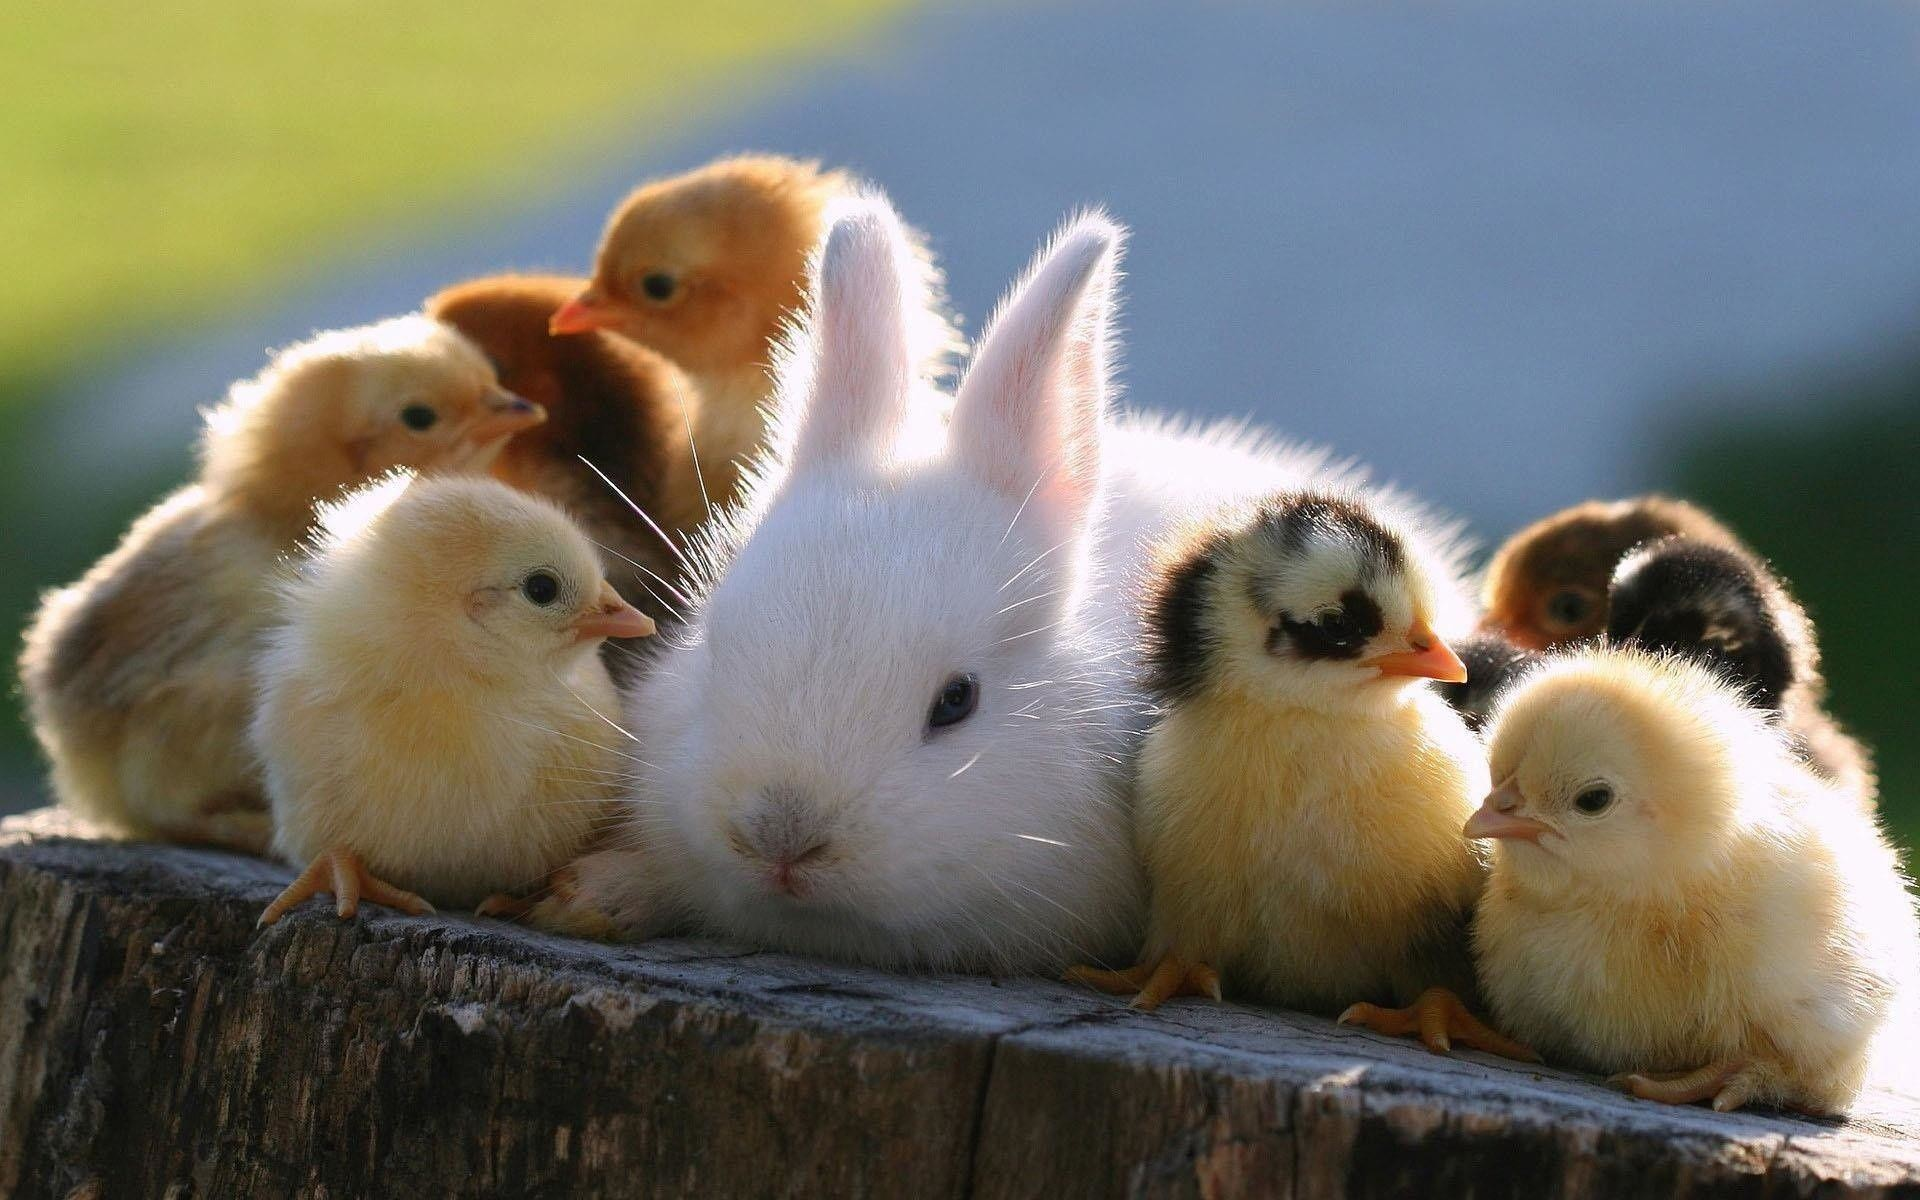 Animals For > Cute Rabbits And Bunnies Wallpaper